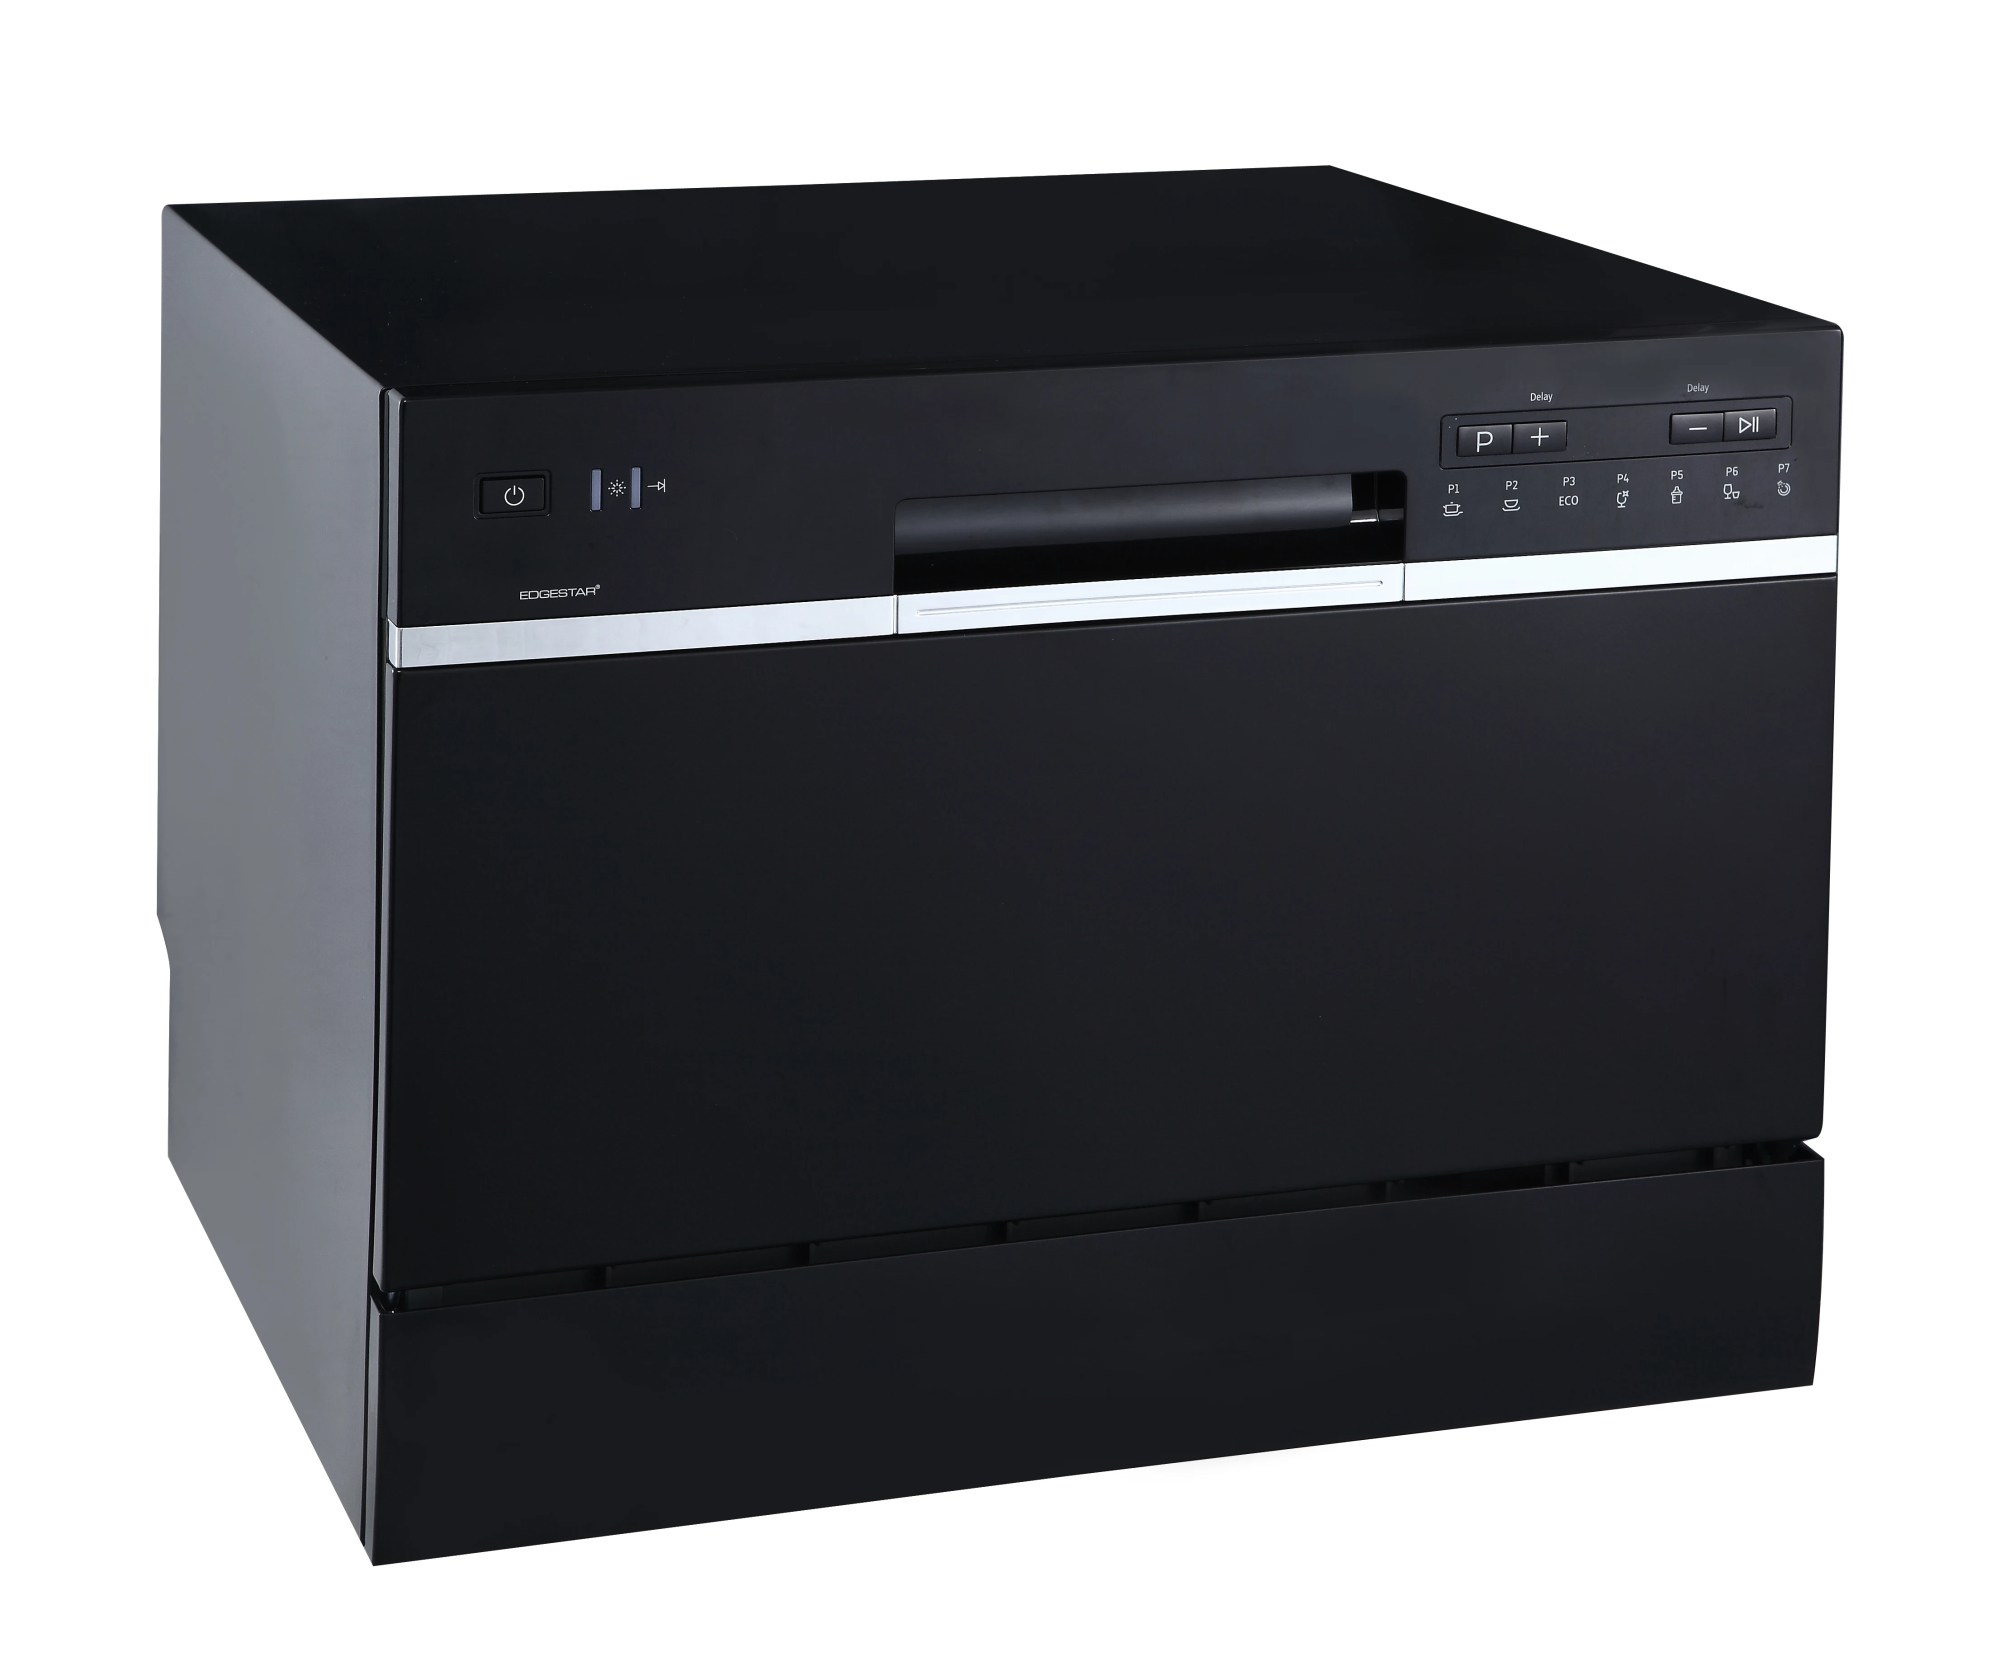 hight resolution of 22 inch wide 6 place setting energy star rated countertop dishwasher